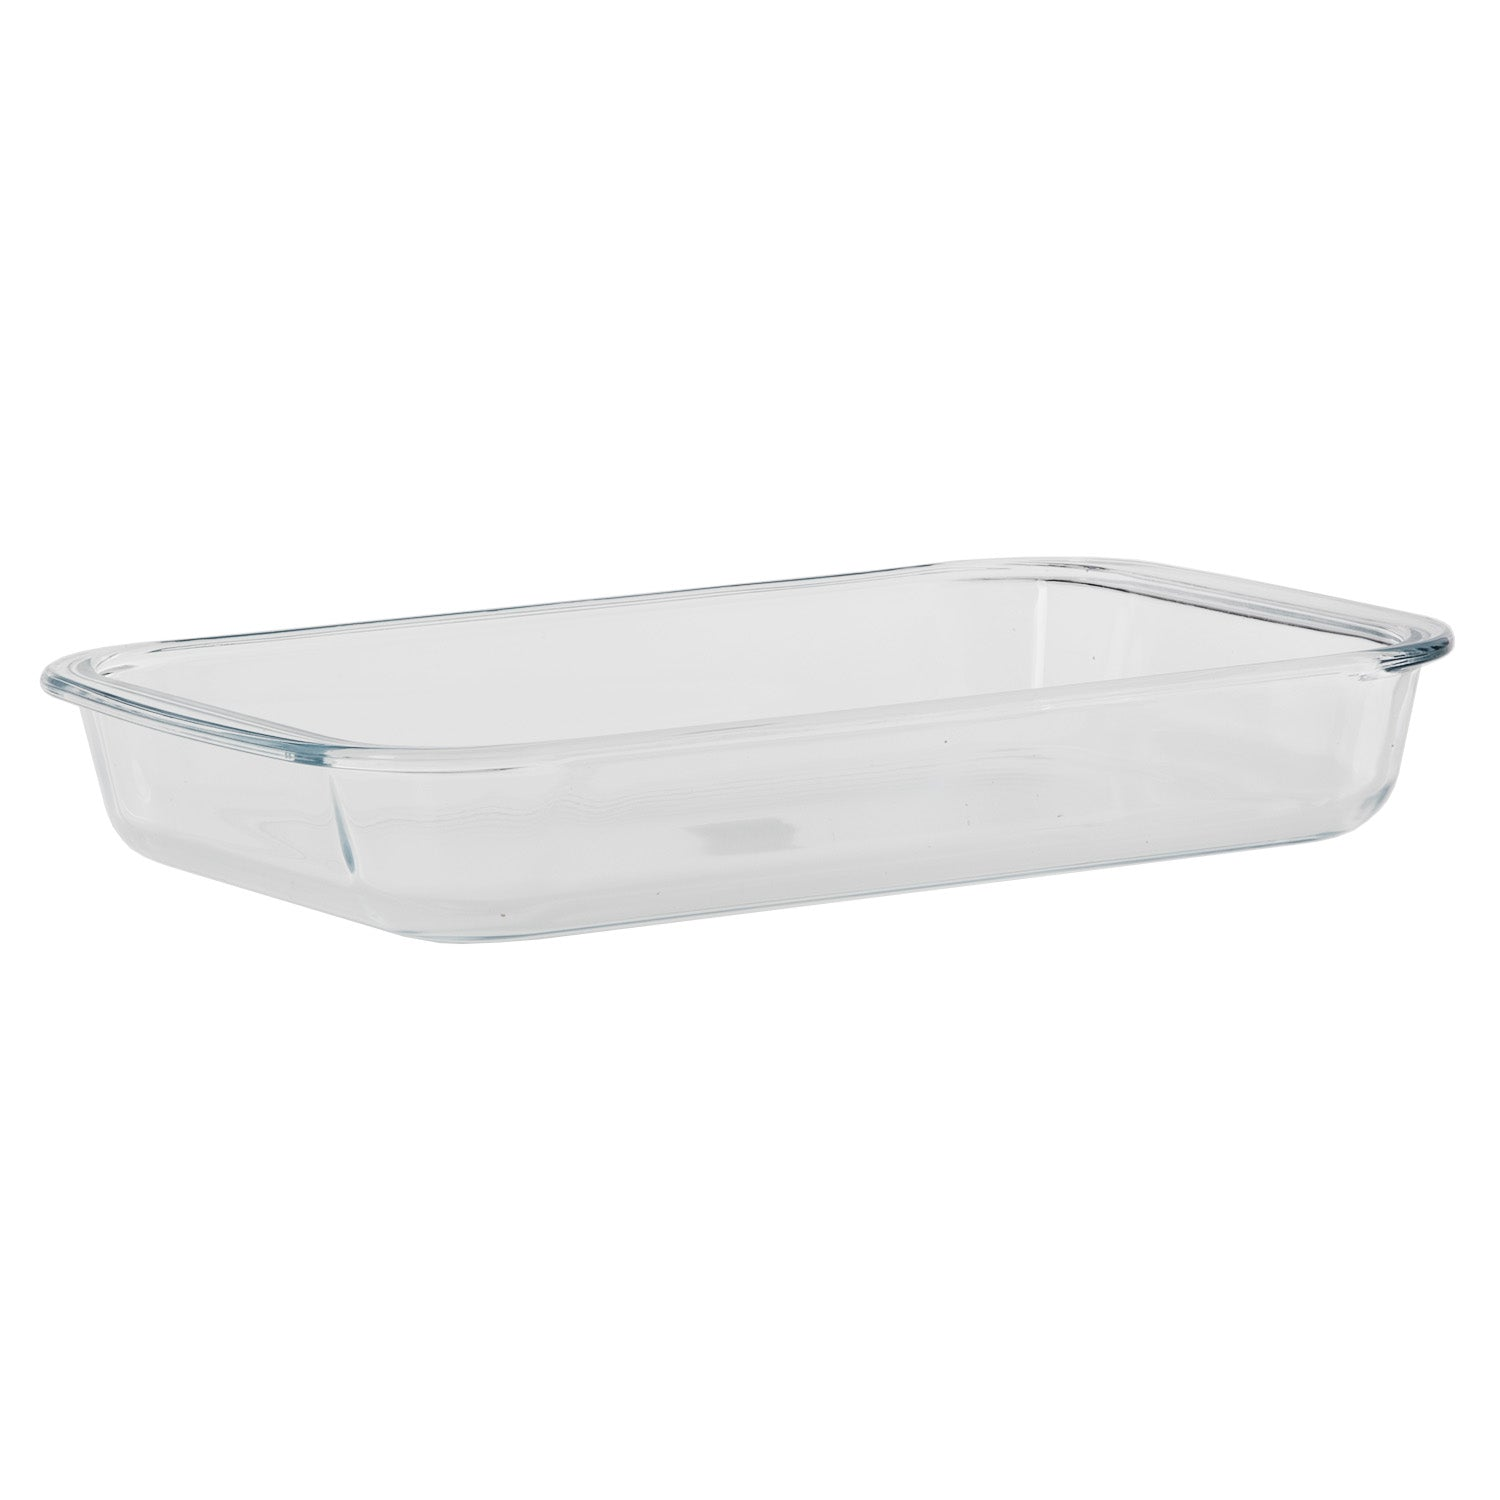 Royalford RF2696-GBD Borosilicate Glass Square Roaster, Casserole Baking Dish, Glass Oven Proof Cooking Dish, Oven Safe Bakeware